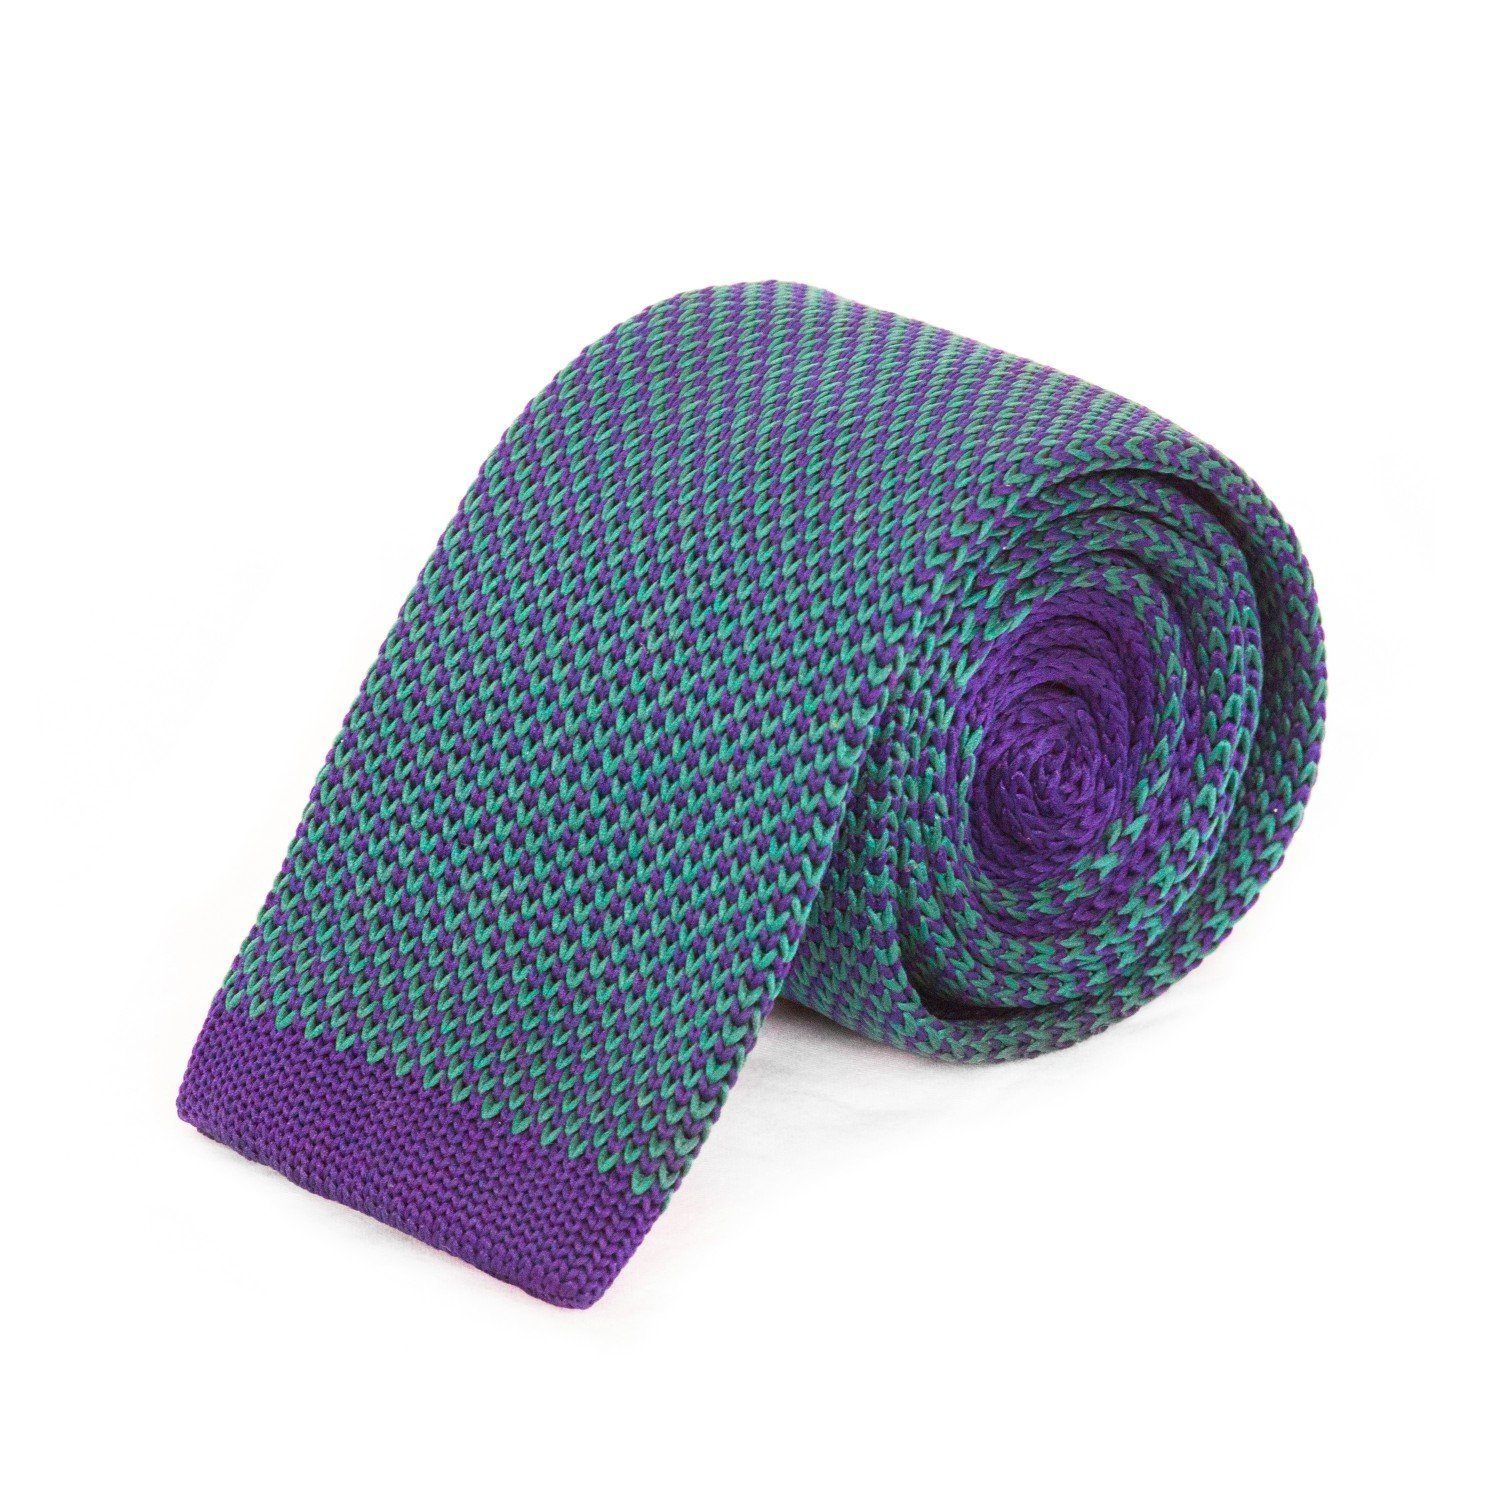 Green and Navy Weave Knit Tie